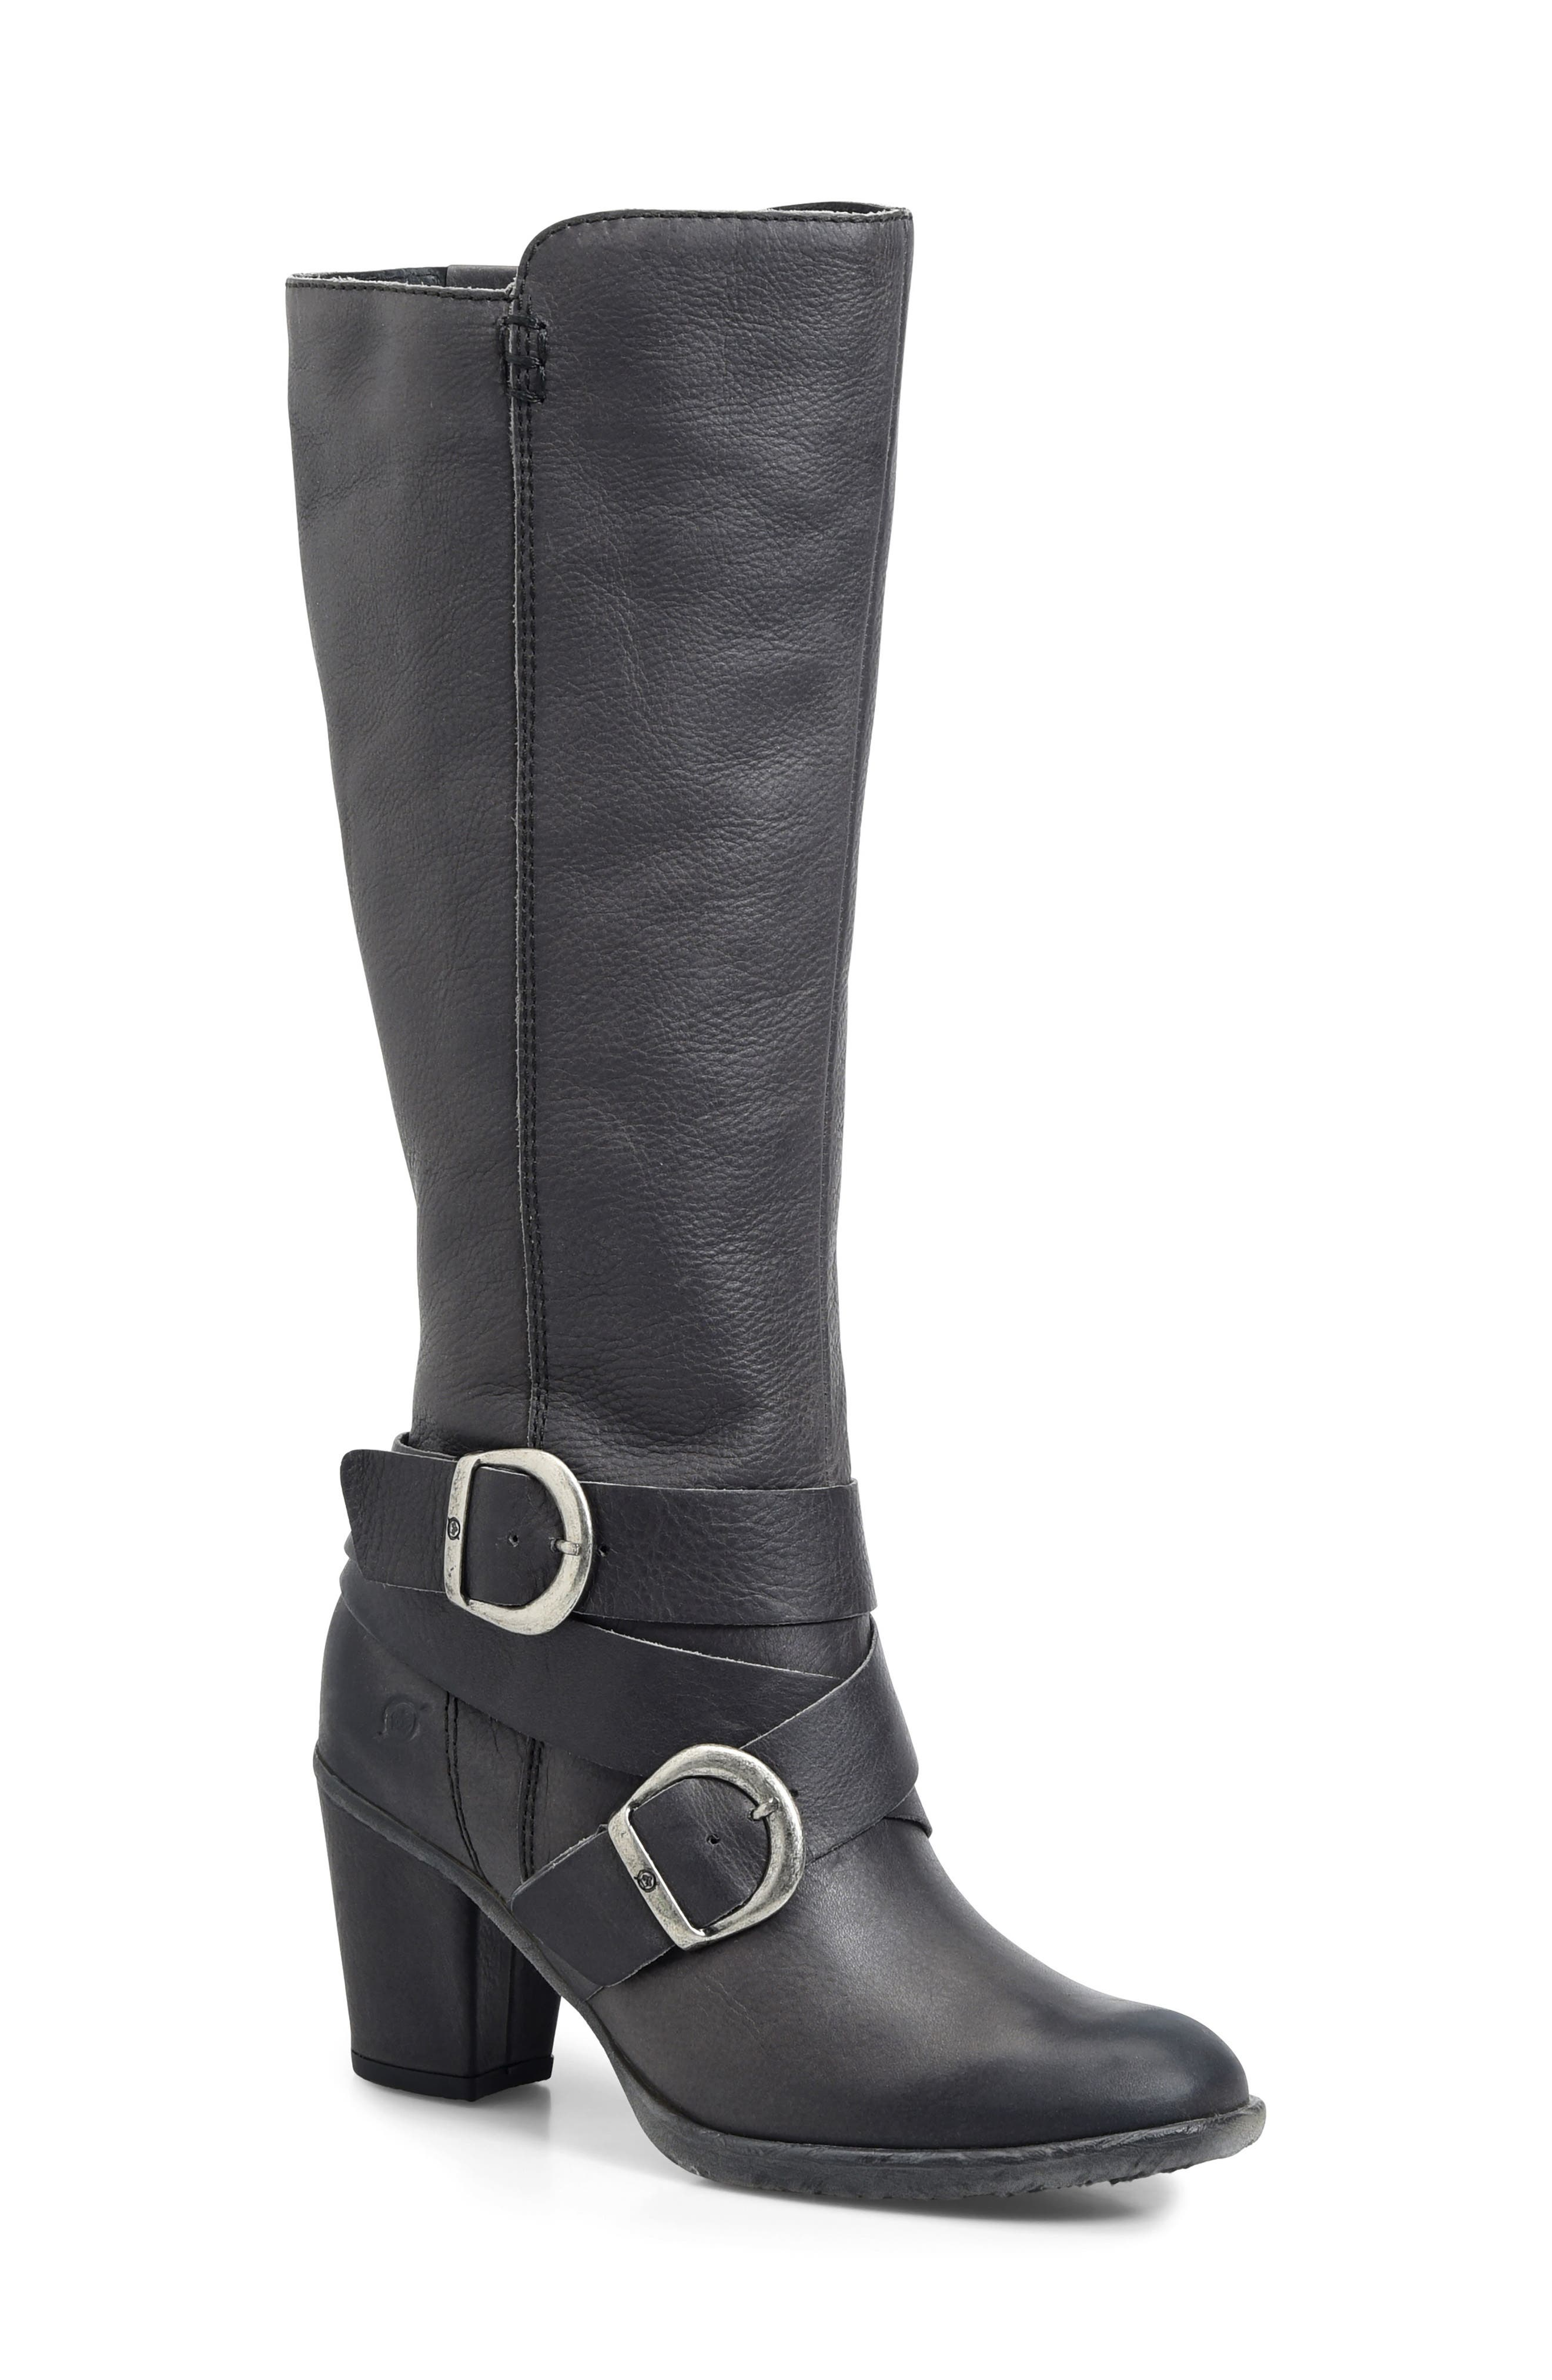 Main Image - Børn Cresent Knee High Boot (Women)